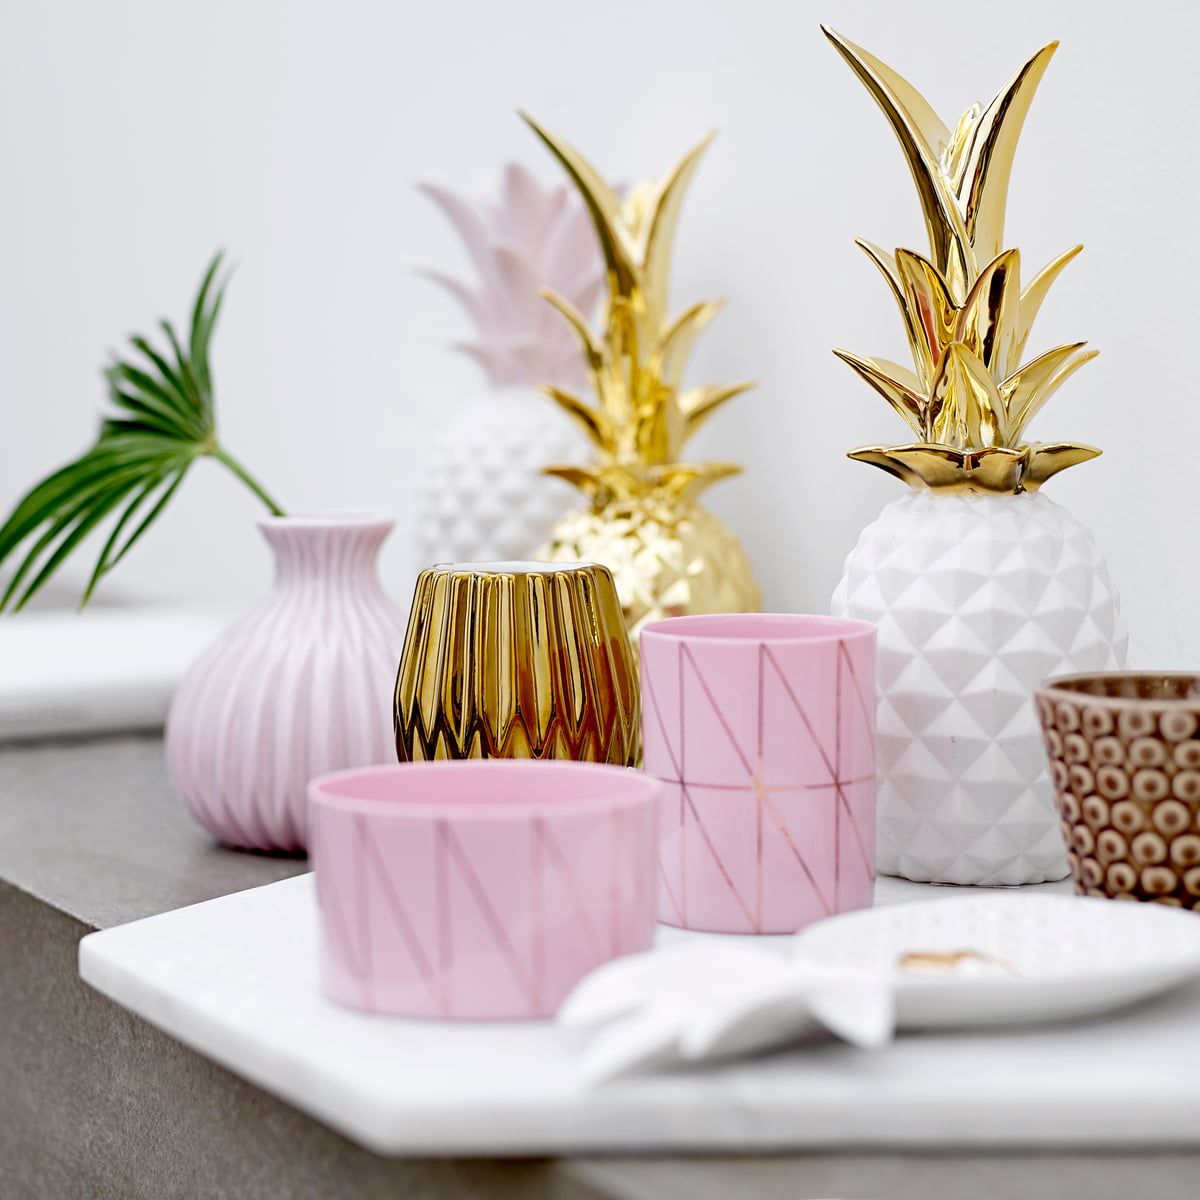 Decorative pineapple by bloomingville shop for Ananas dekoration